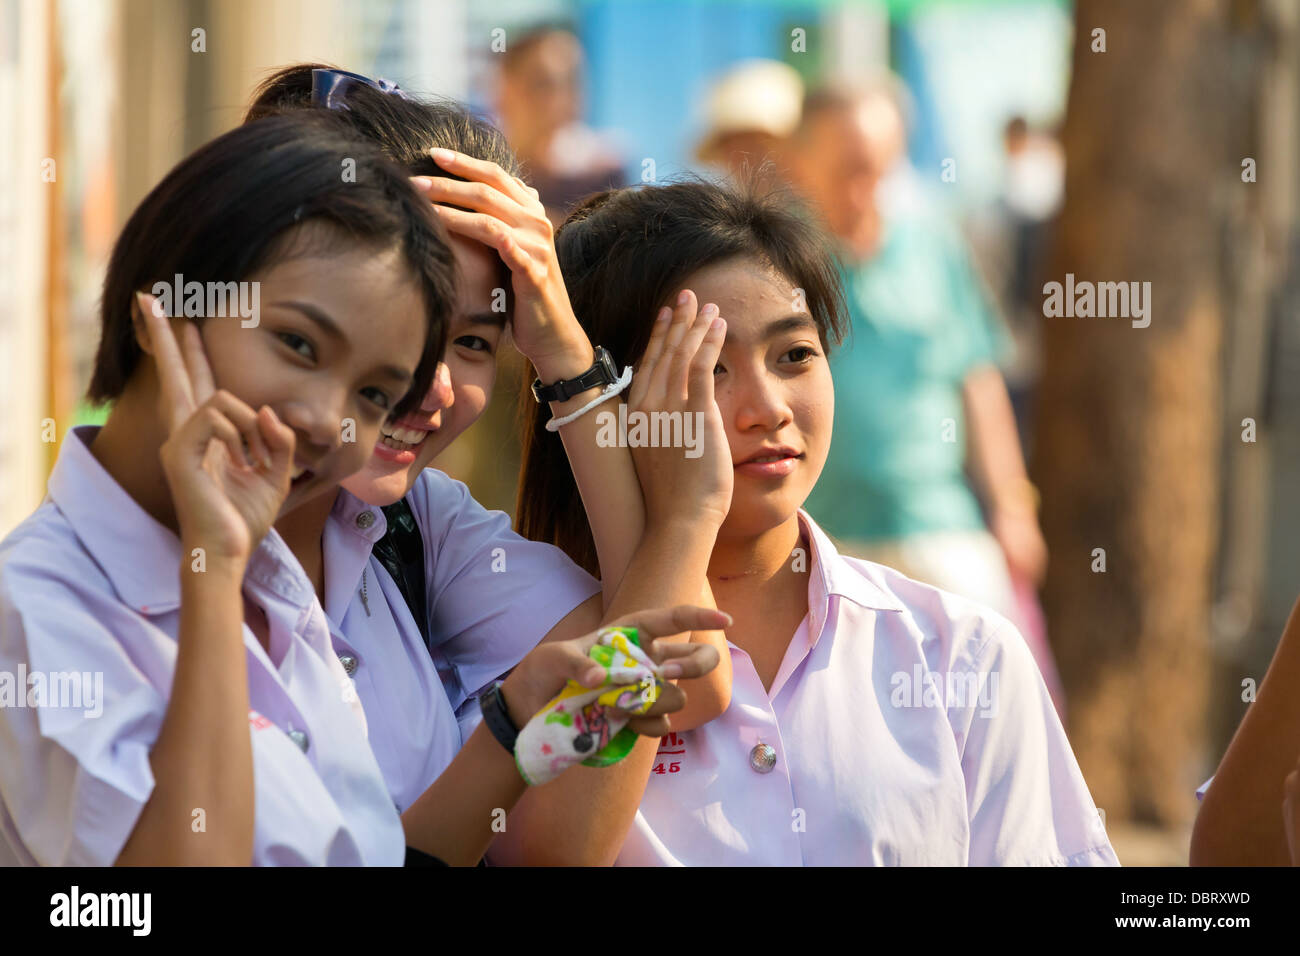 Pity, that Thailand school girls crossed legs